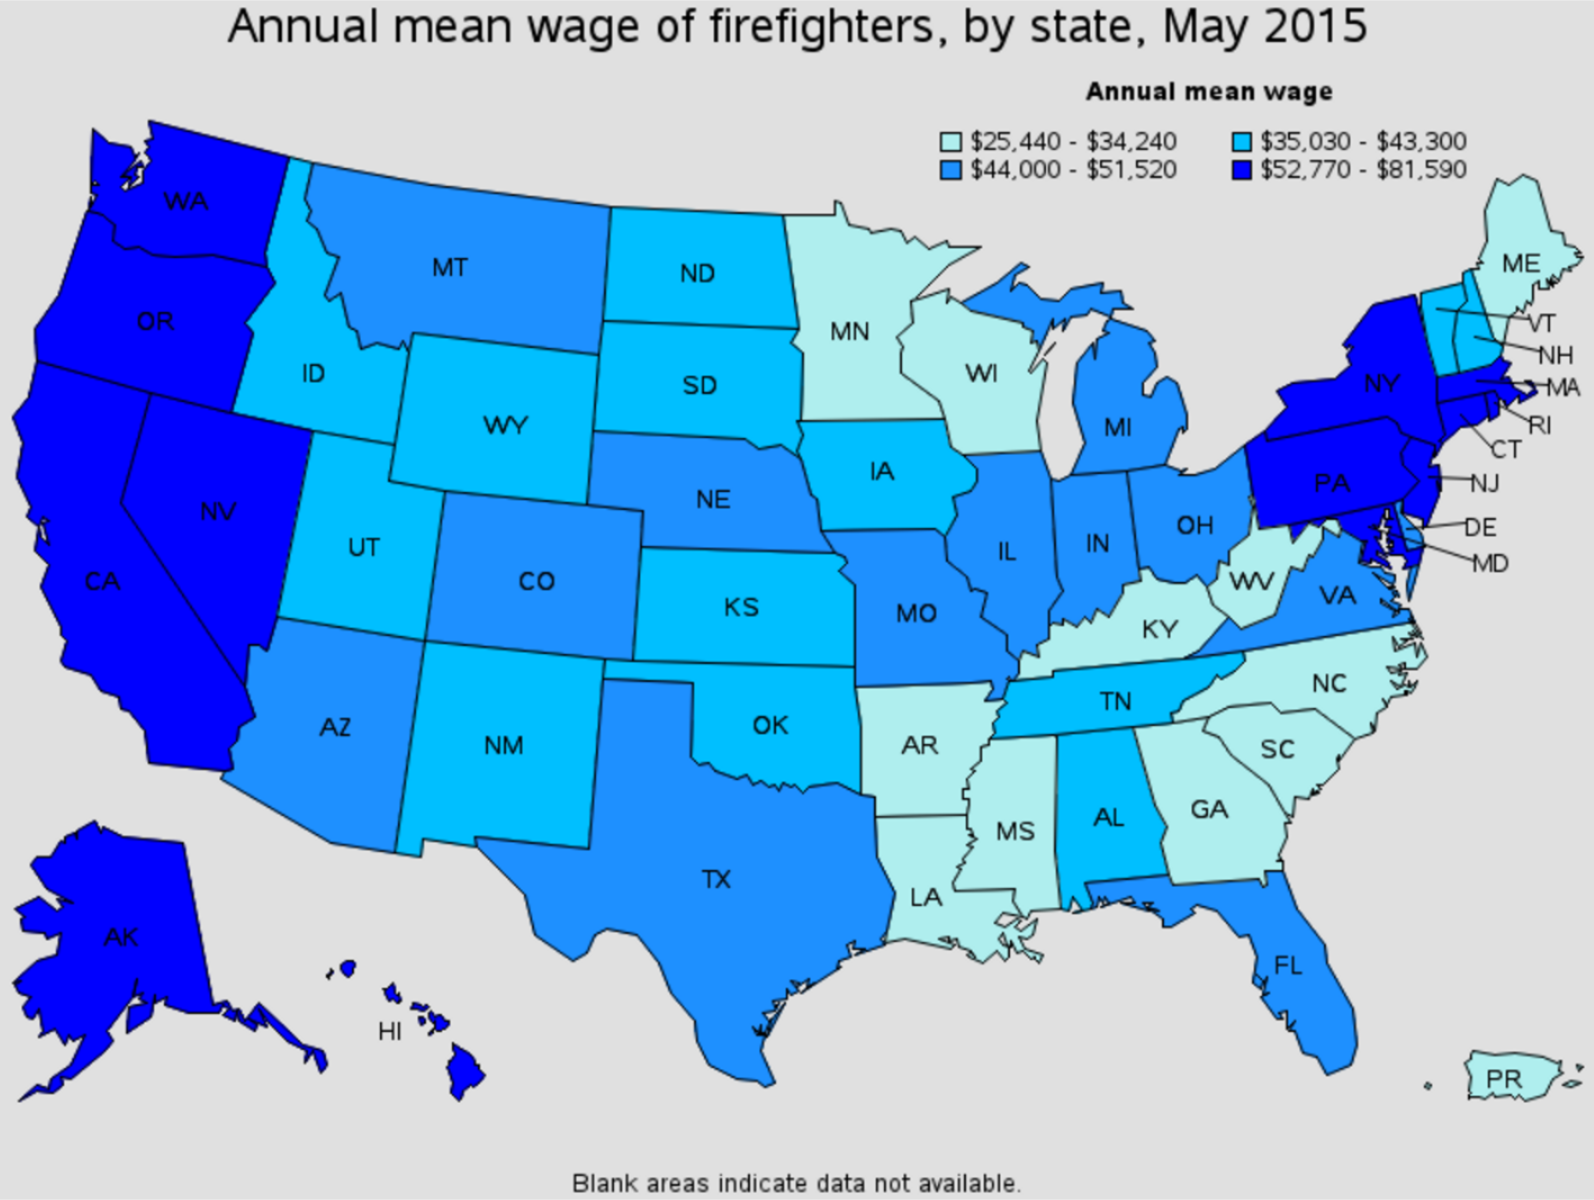 firefighter average salary by state Tucson Arizona